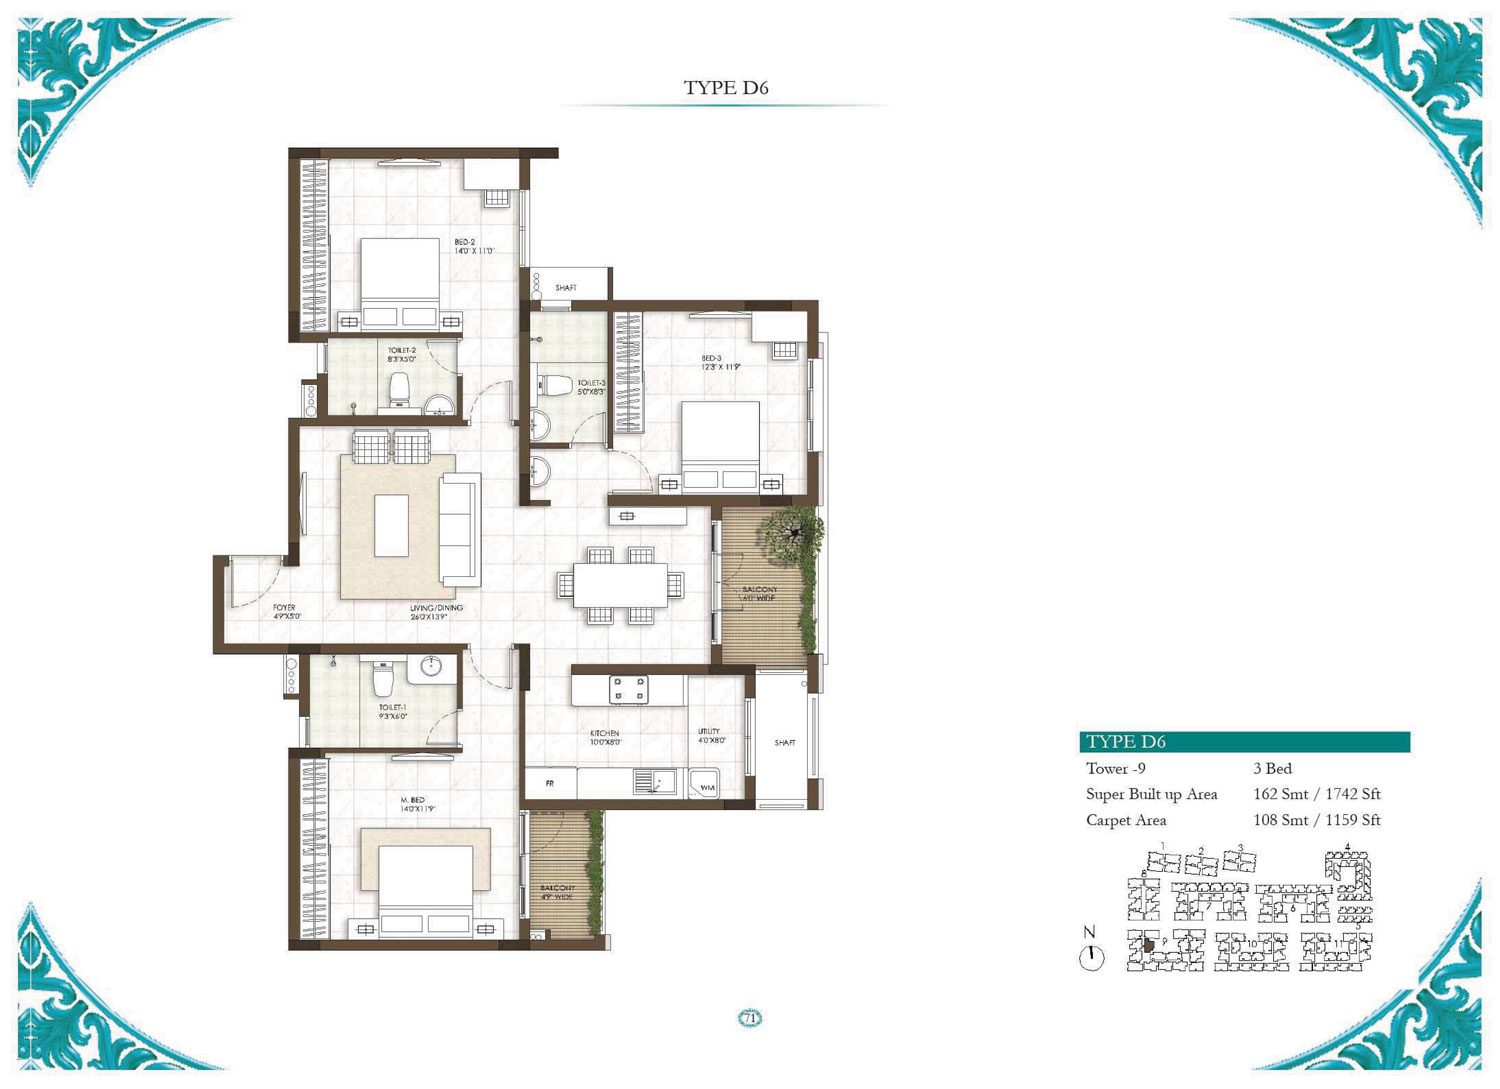 Type D6 - 3 Bed - 1742 Sq Ft